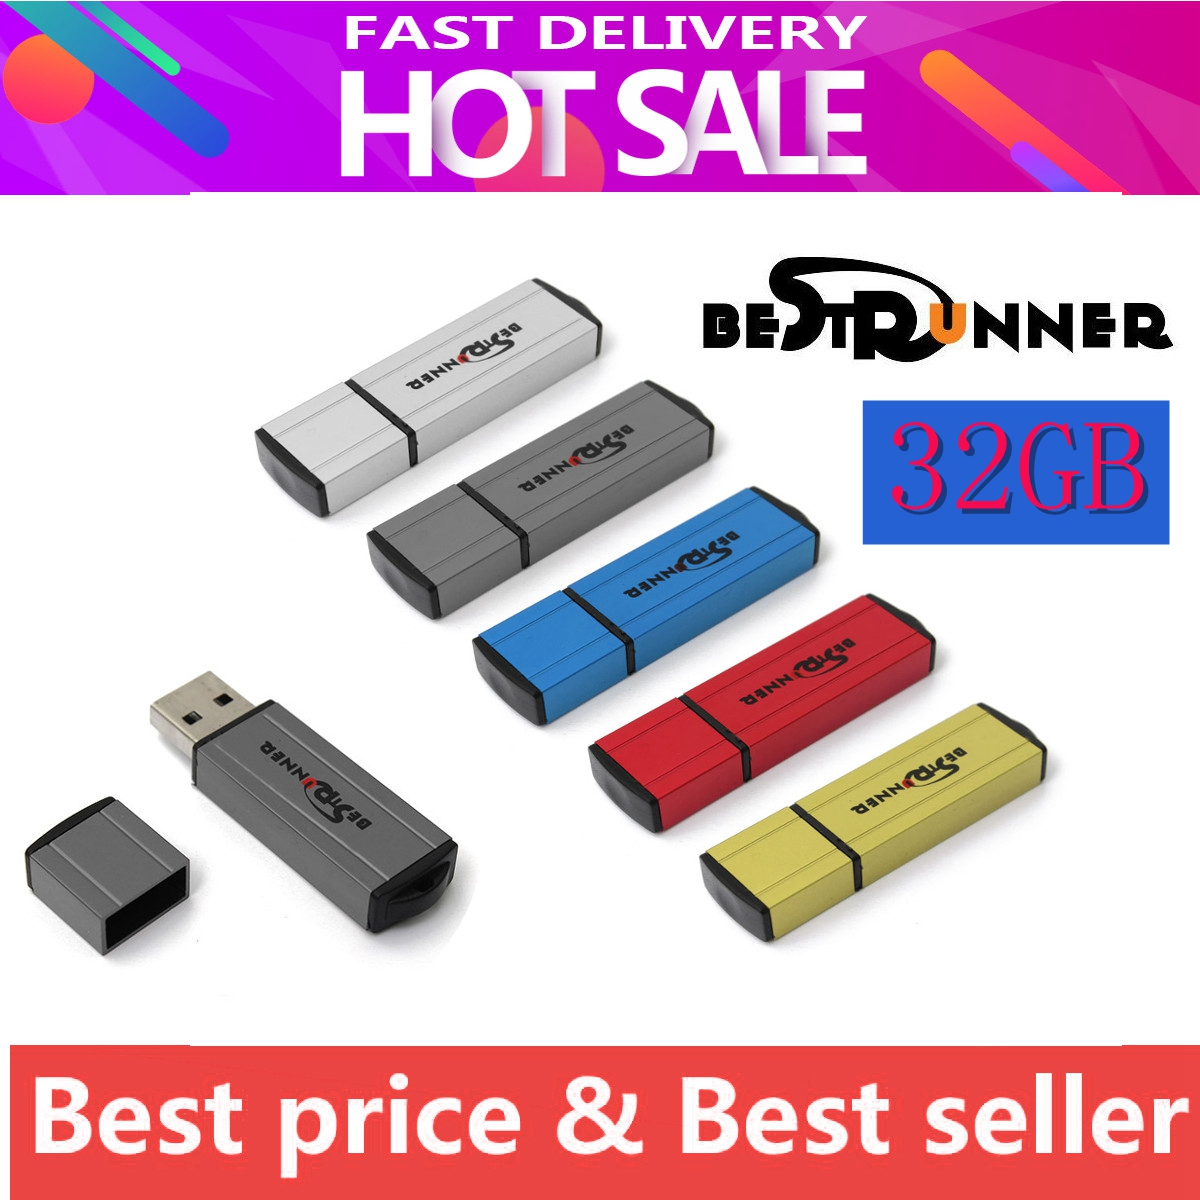 BESTRUNNER 32GB METAL USB 2.0 Flash Drive Stick Memory Thumb Pen Storage U-Disk Multi Color